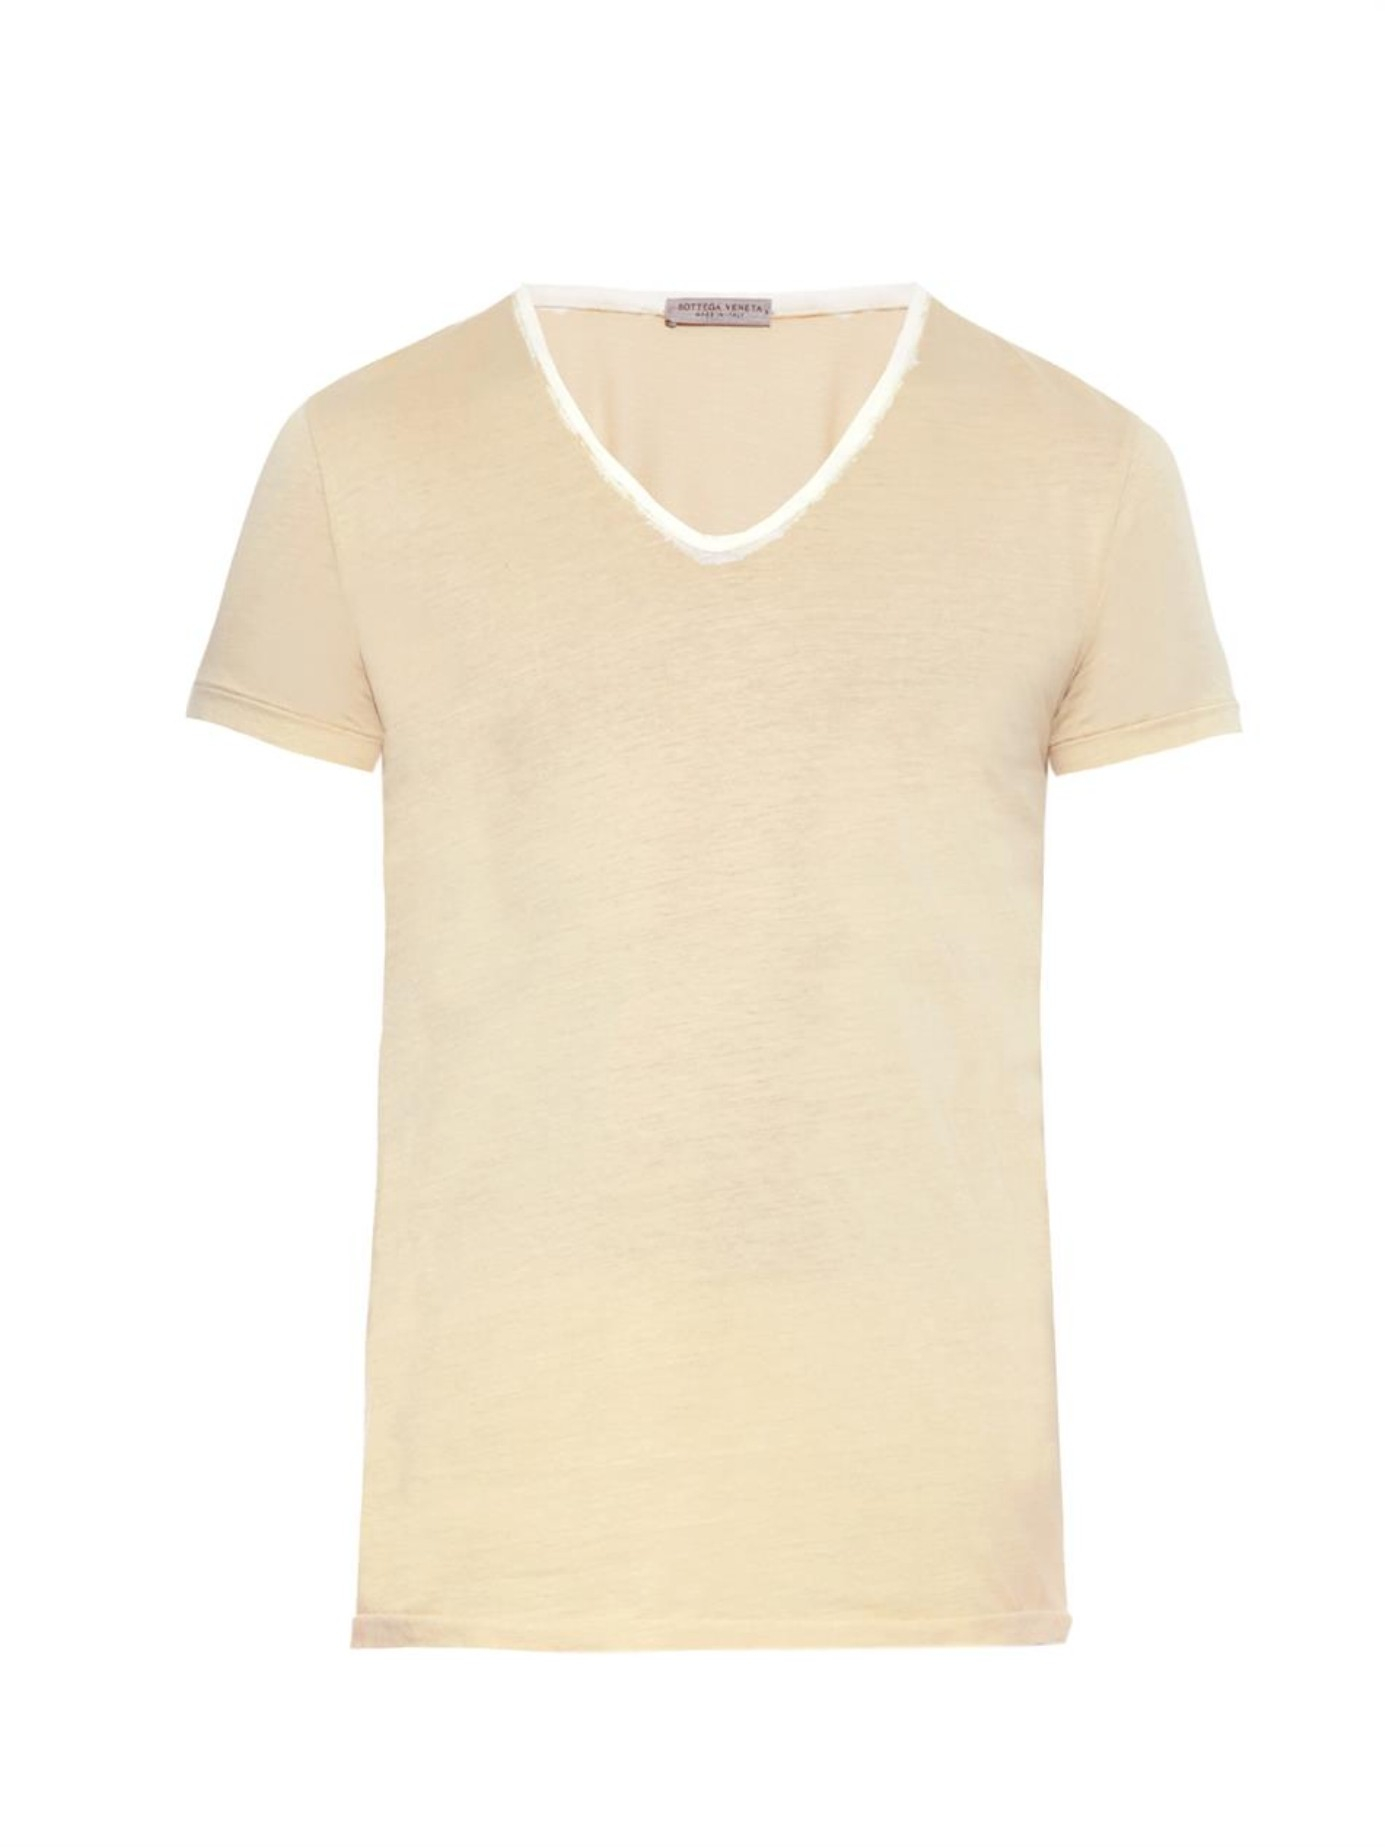 Bottega veneta dip dyed cotton jersey t shirt in yellow for Bottega veneta t shirt